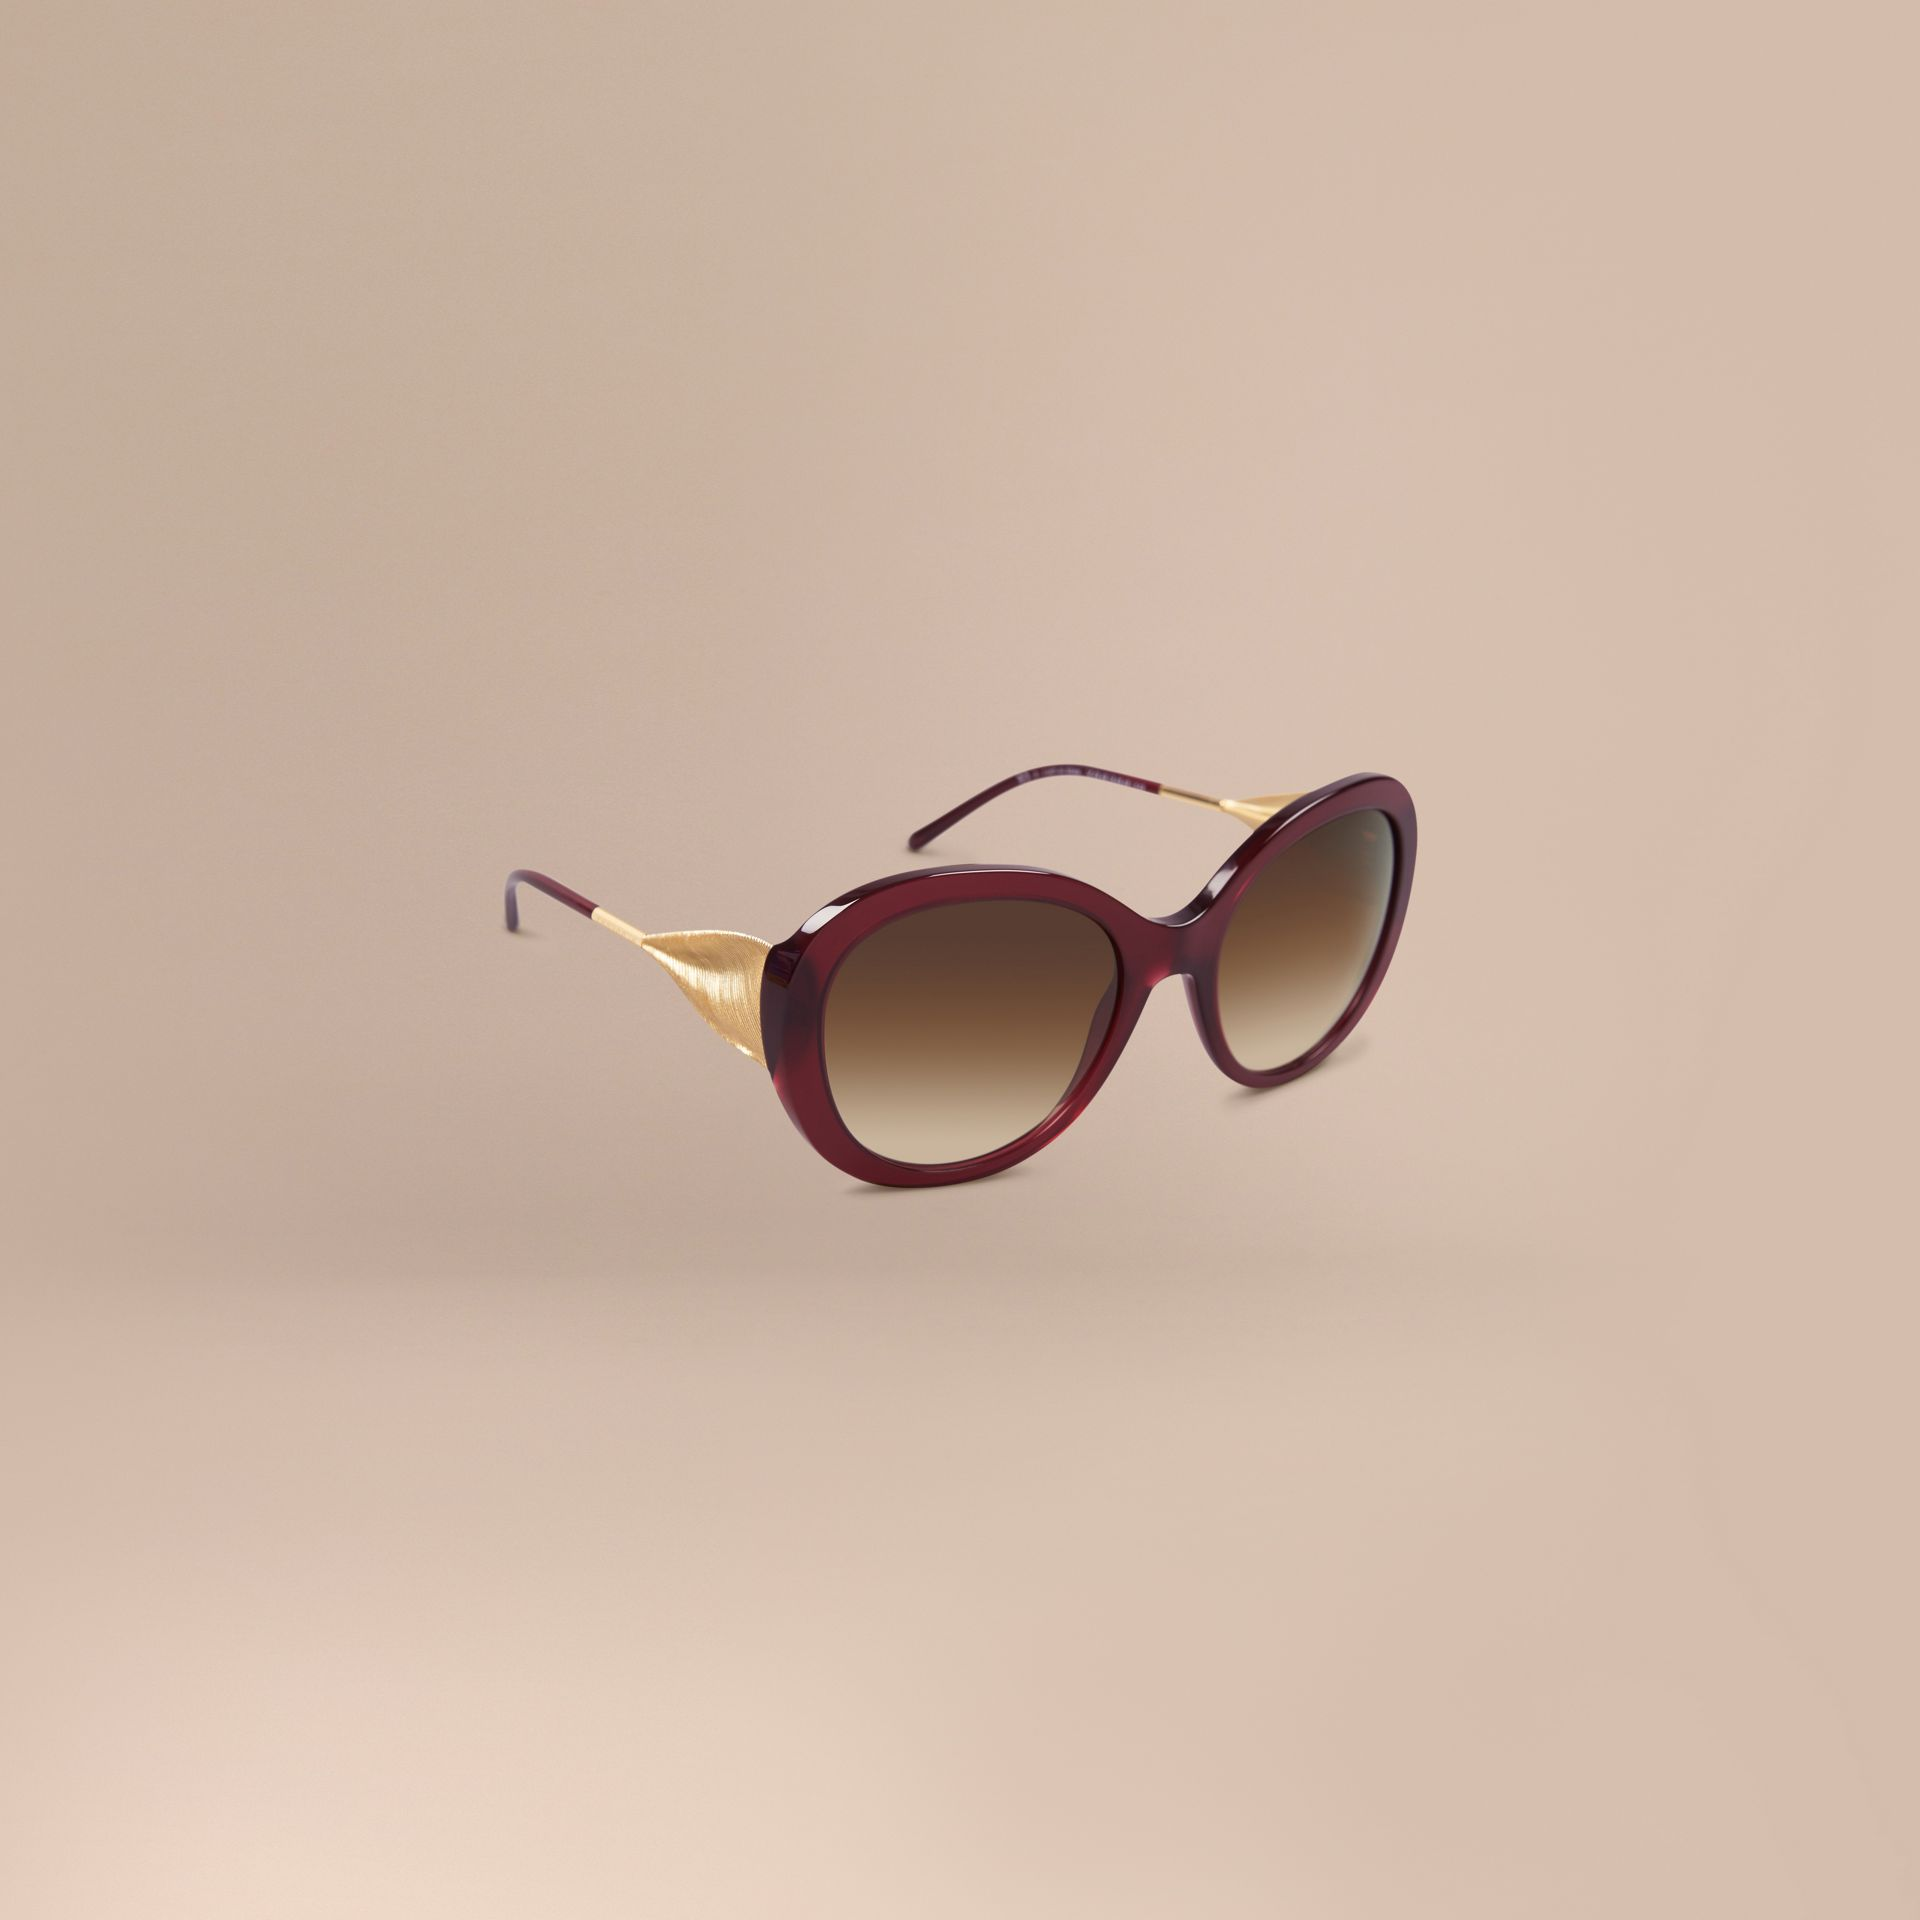 Oxblood Oversize Round Frame Sunglasses Oxblood - gallery image 1